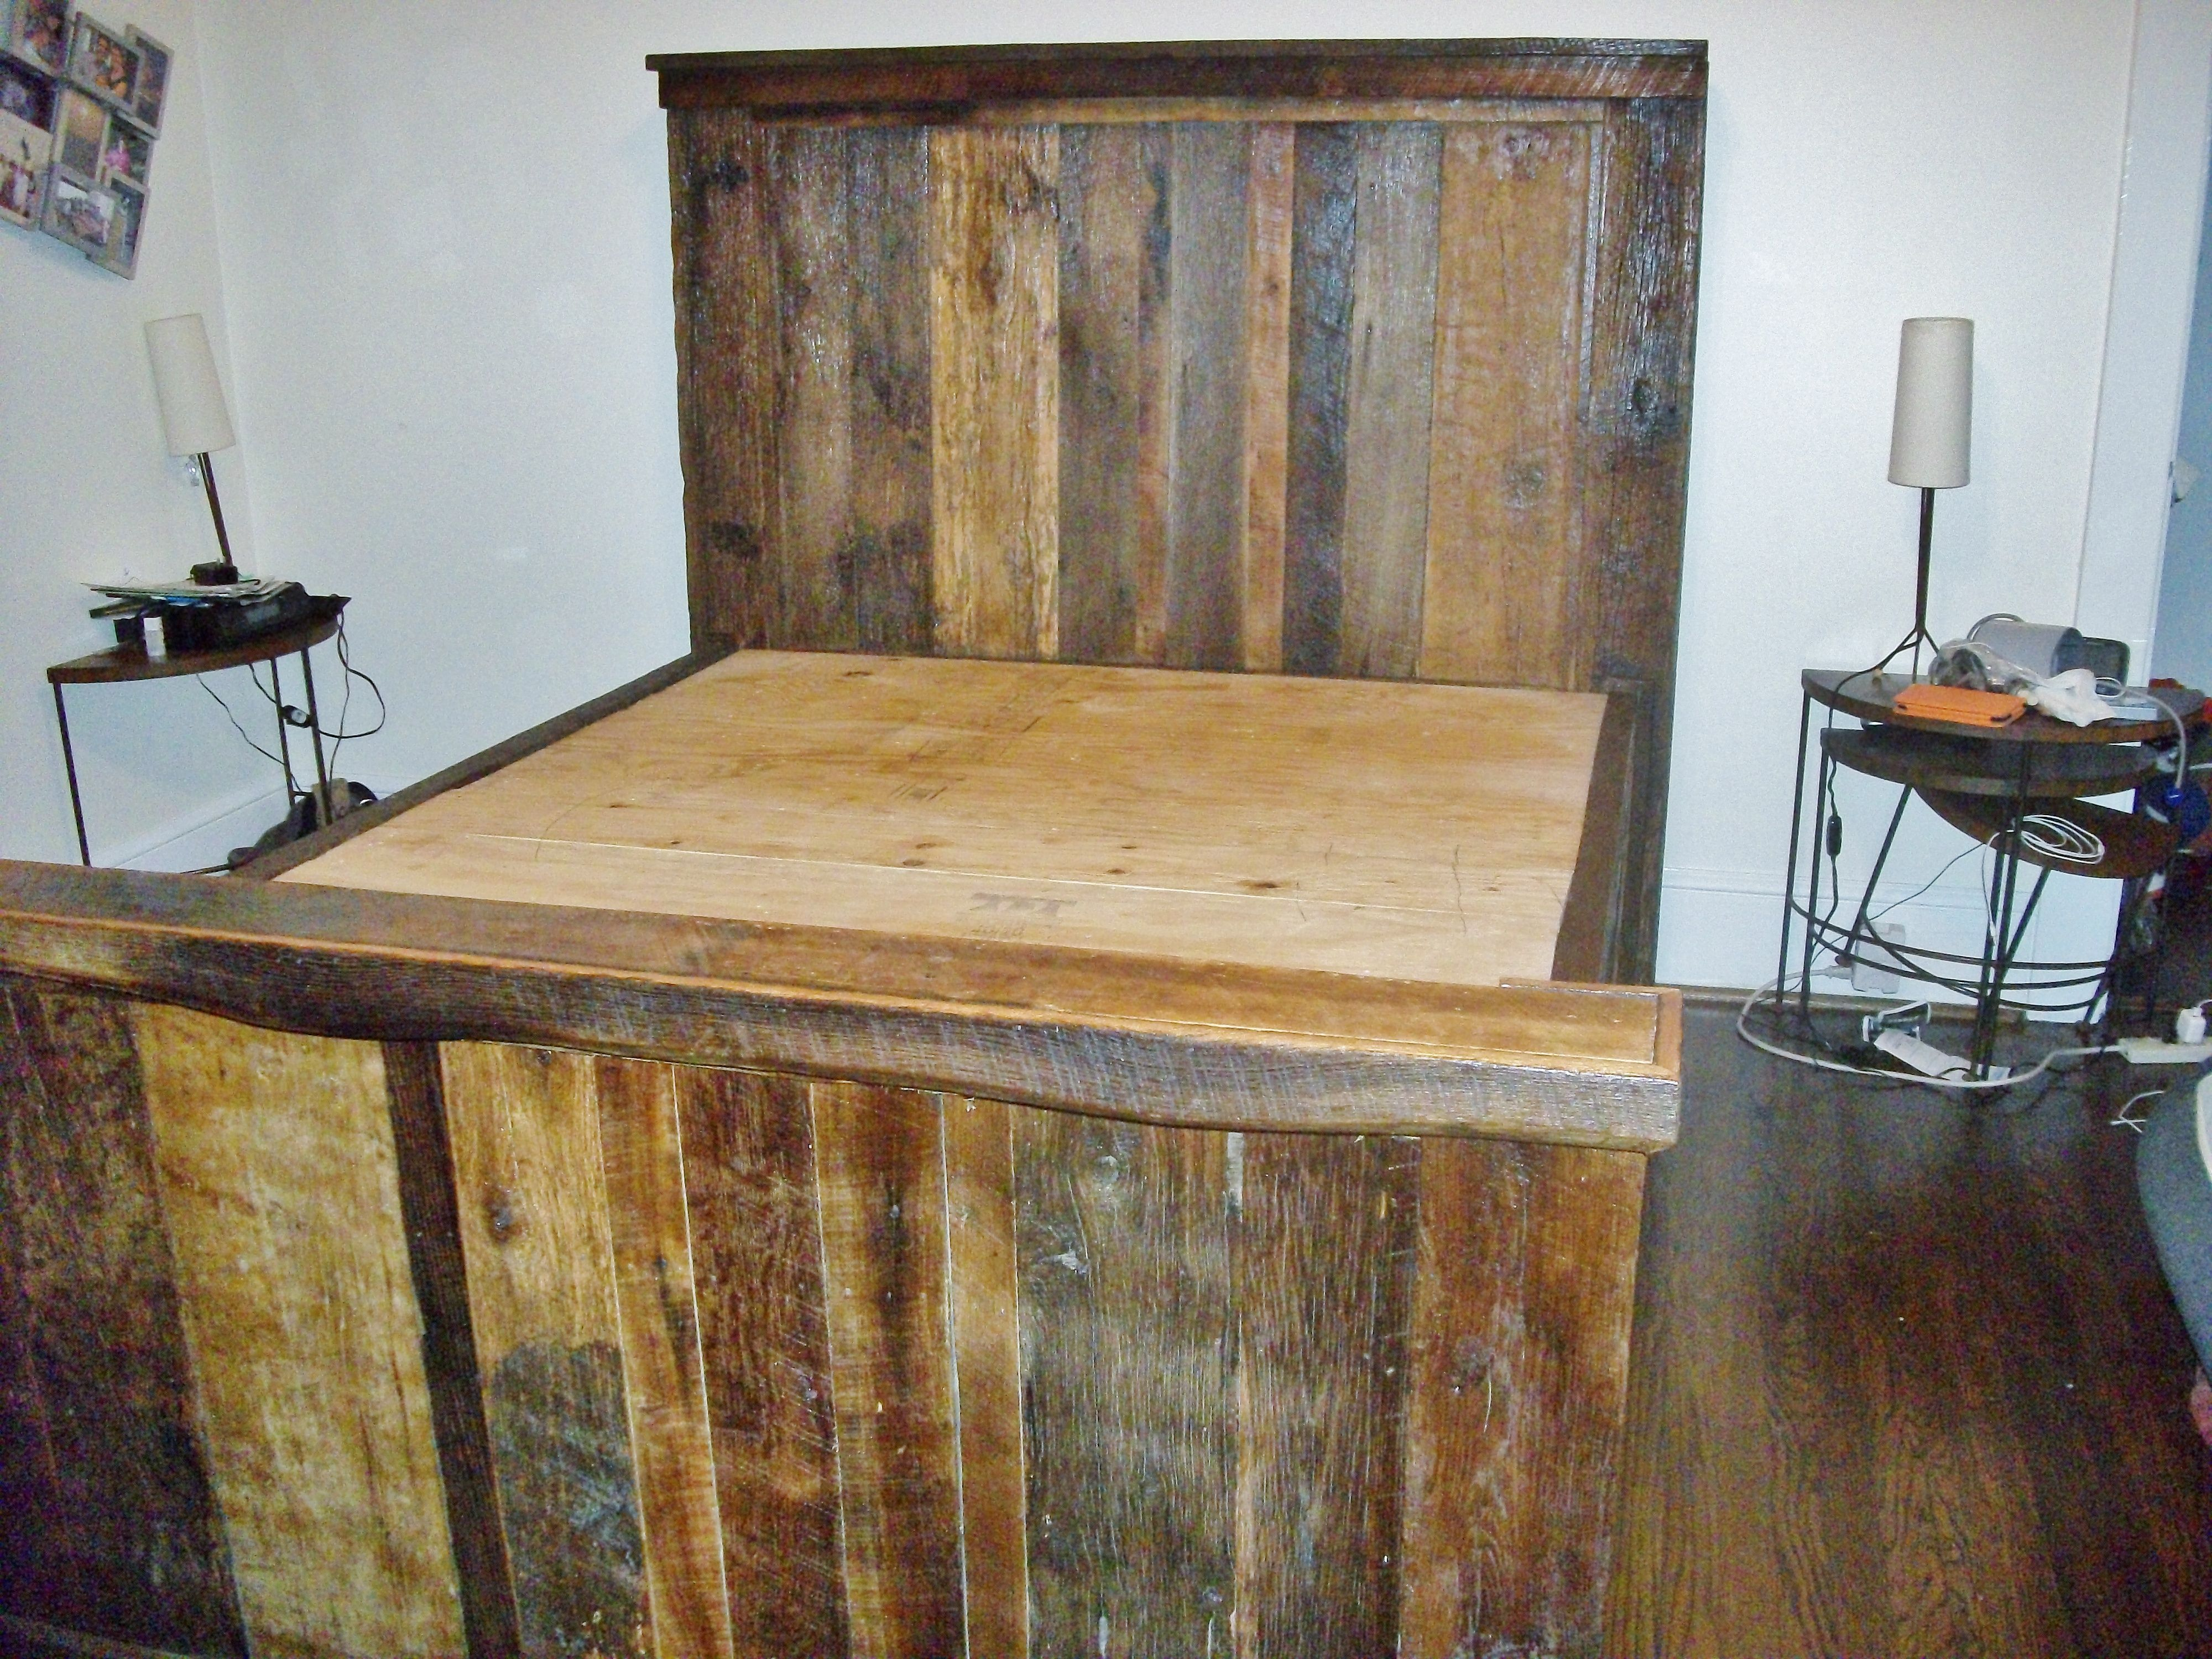 This is a barn wood platform bed we built that has drawers